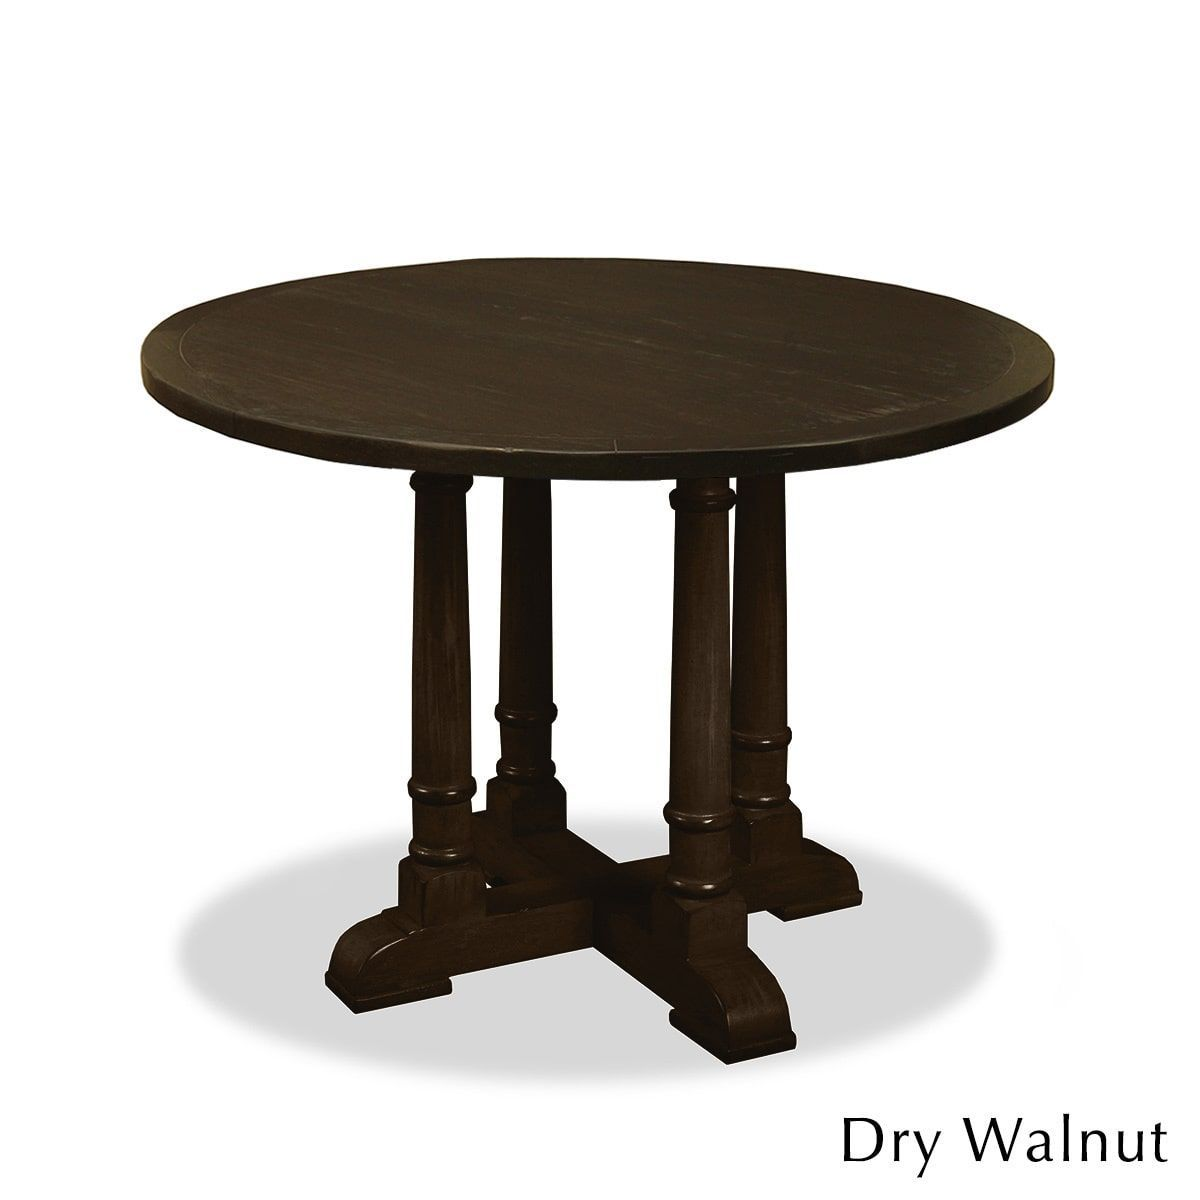 South cone home victoria wood counter or bar height dining table 42 south cone home victoria wood counter or bar height dining table 42 inch round table color brown size 42 watchthetrailerfo